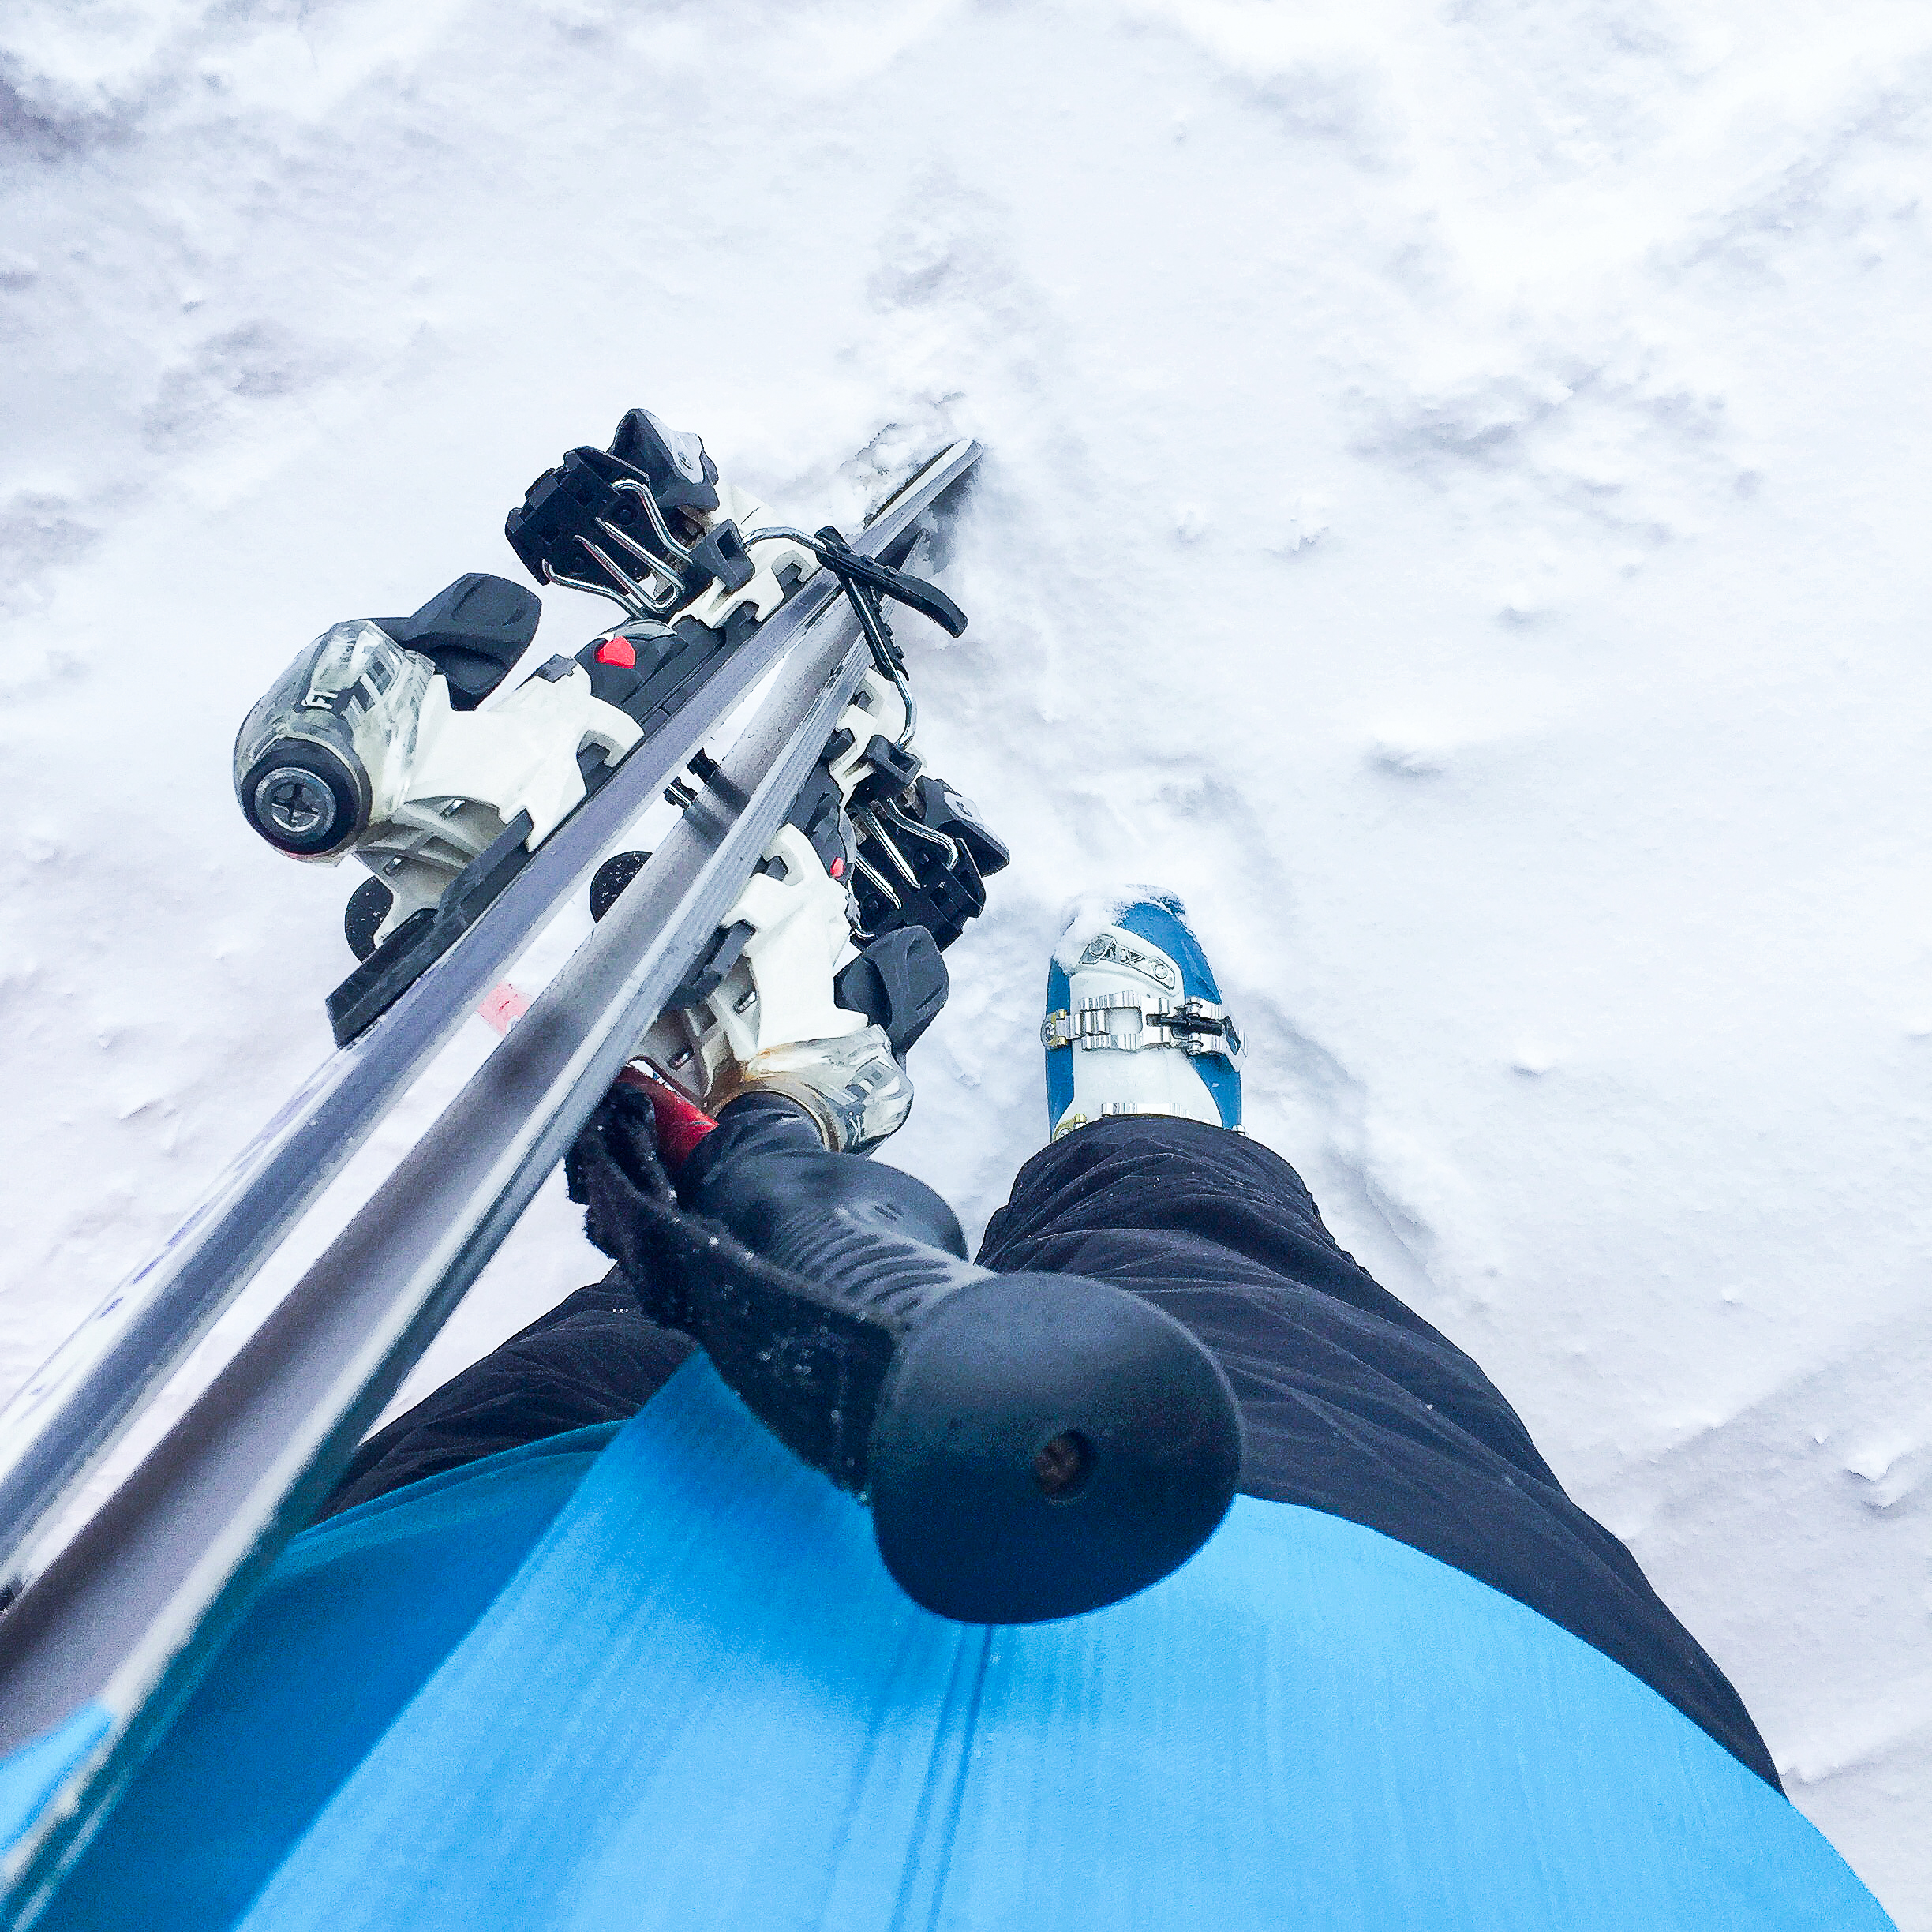 Absolute Beginners Guide To Skiing